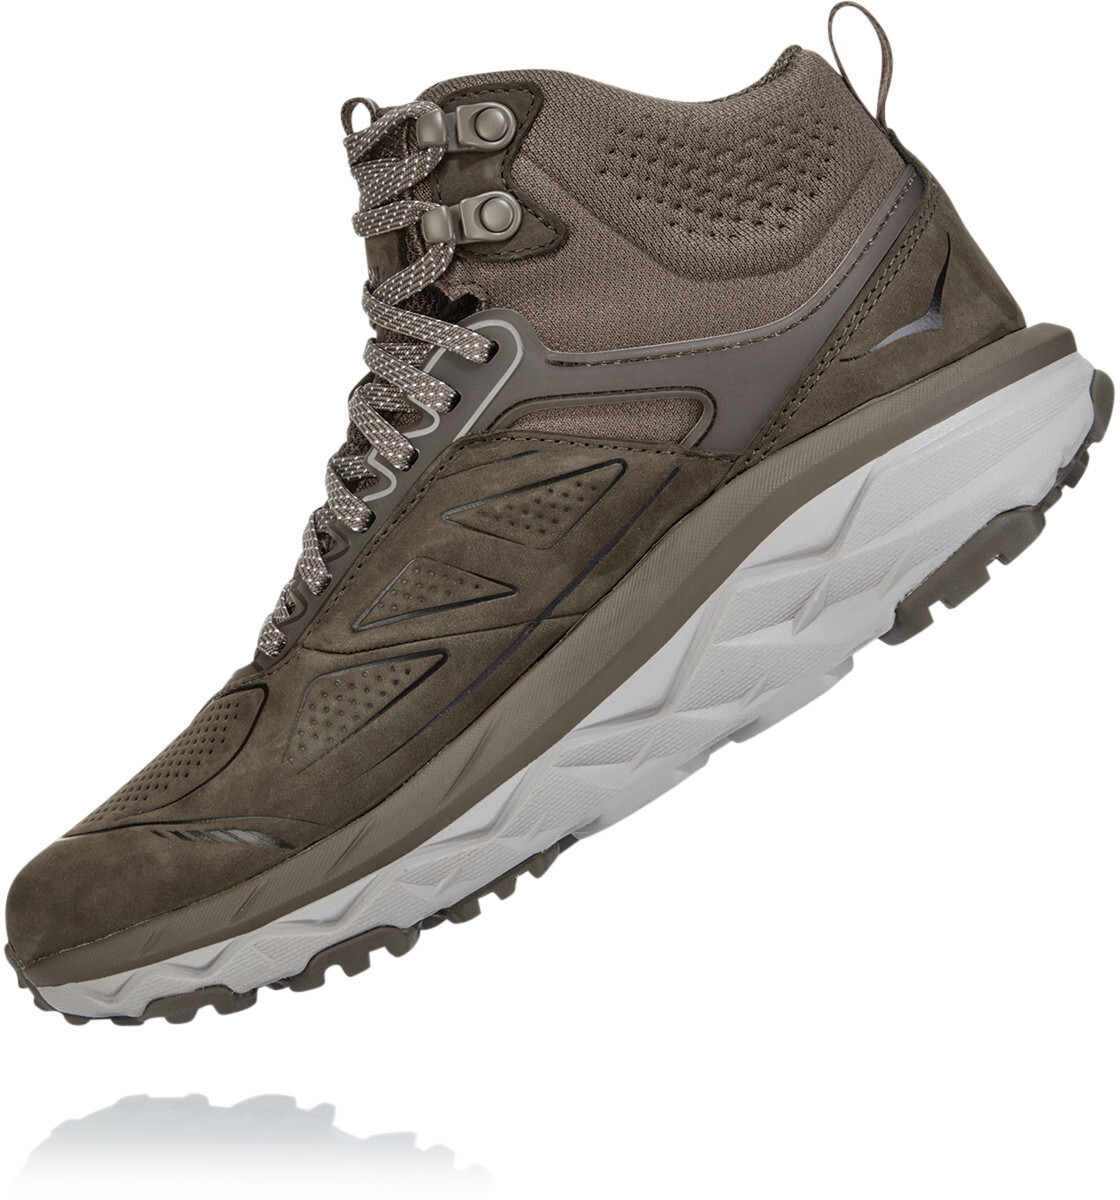 Hoka One One Challenger Gore Tex Boots mi hautes Femme, major brownheather